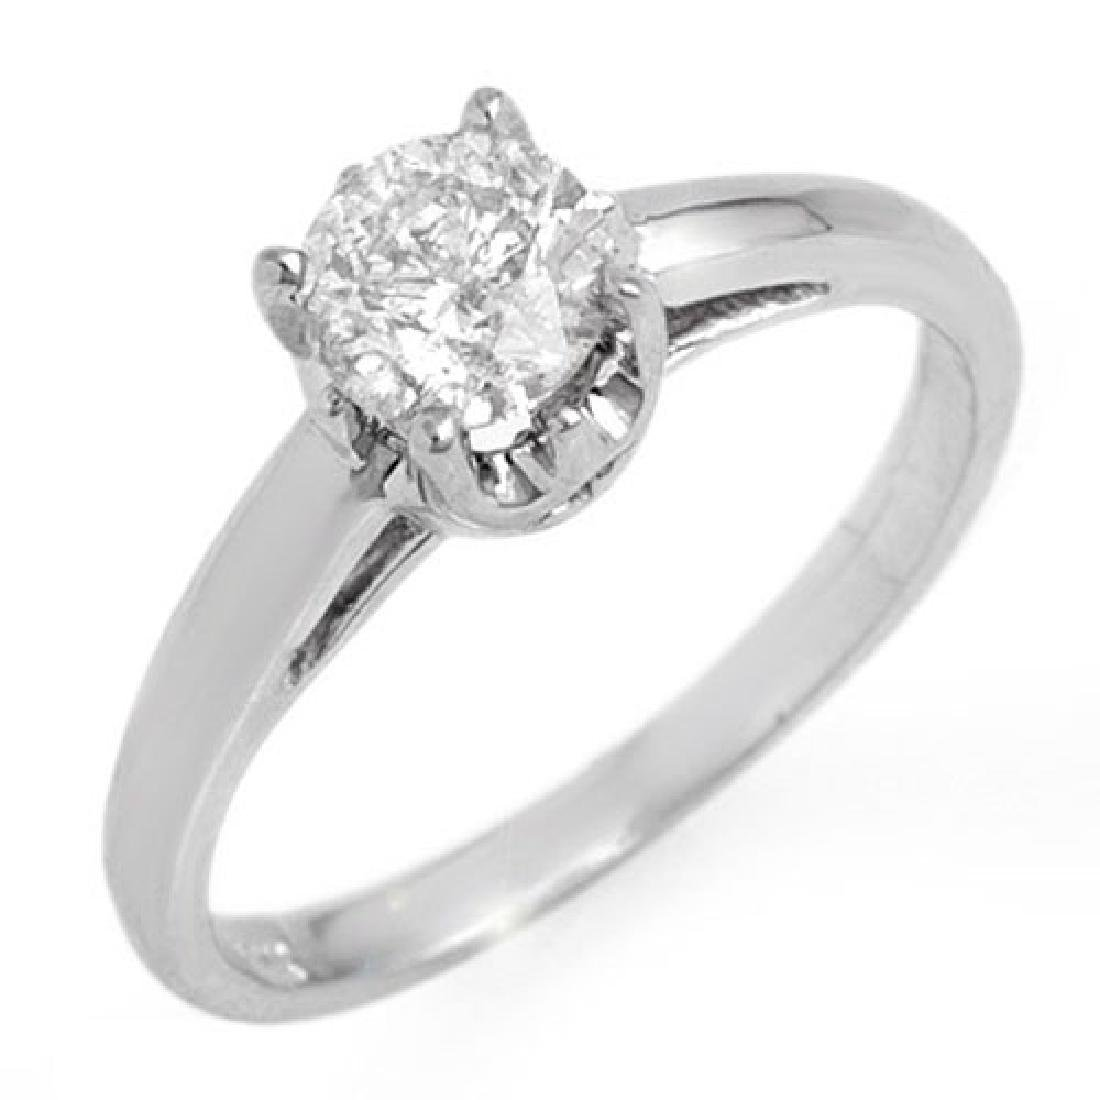 0.80 CTW Certified VS/SI Diamond Solitaire Ring 18K